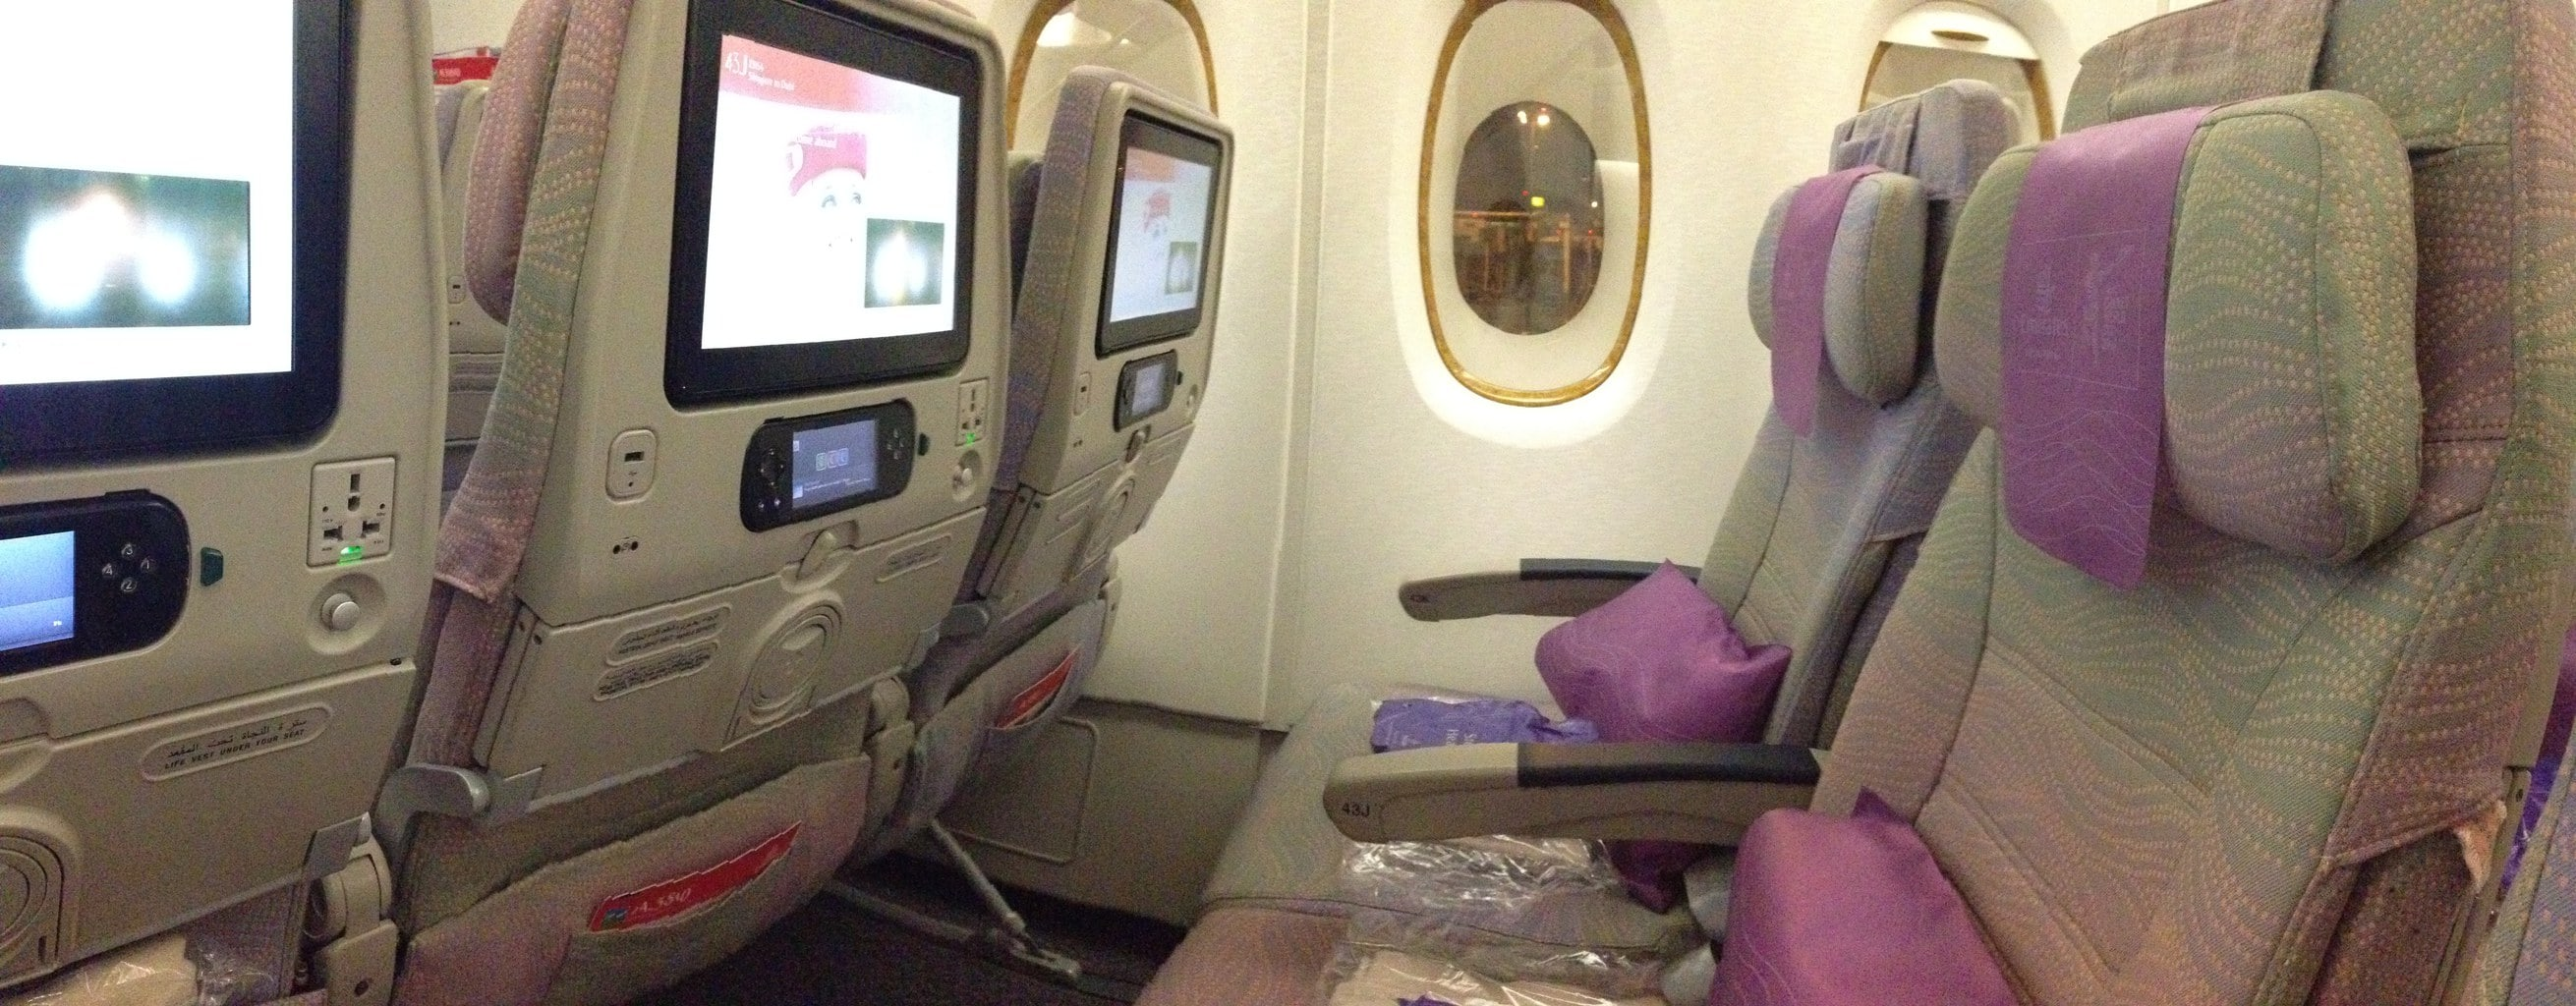 Emirates Airlines Economy Class Space